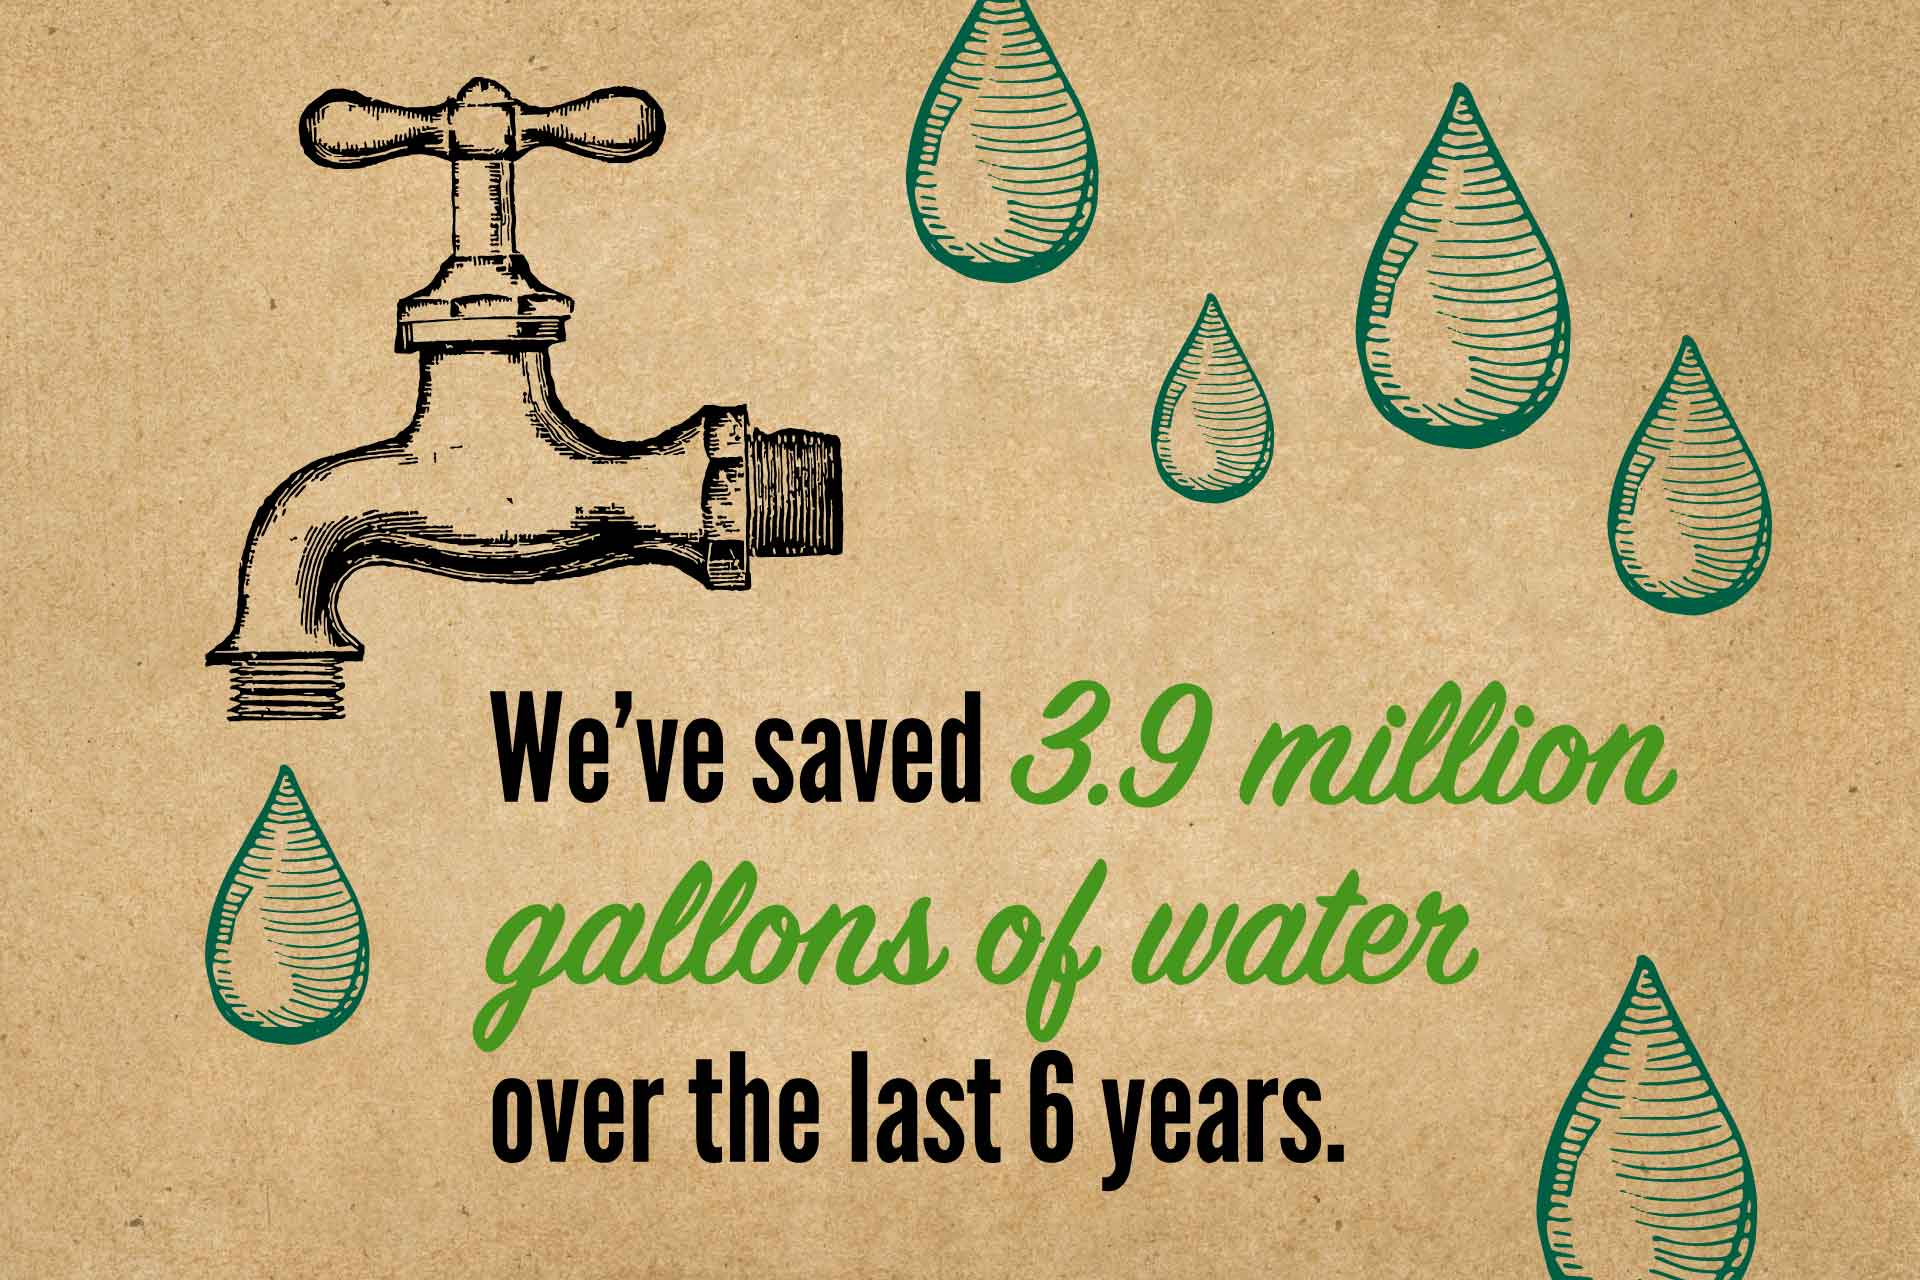 Water faucet graphic: We've saved 3.9 million gallons of water over the last 6 years.